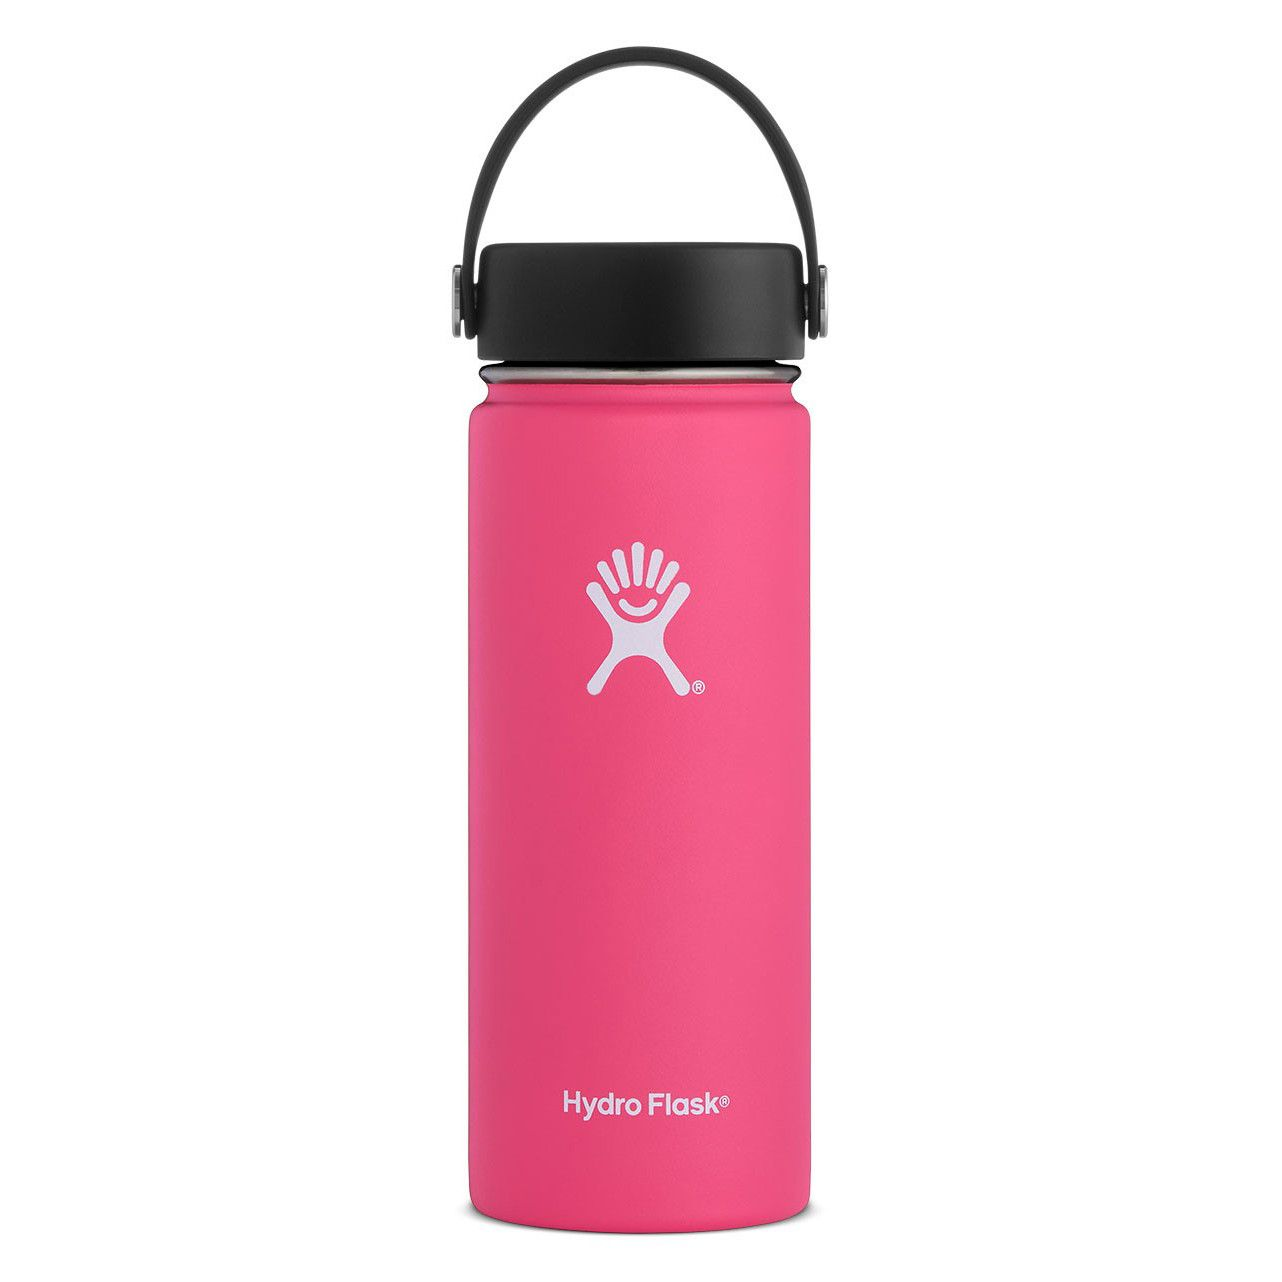 Hydro Flask Vacuum Insulated Bottle In Watermelon 18oz Hydroflask Bottle Insulated Bottle